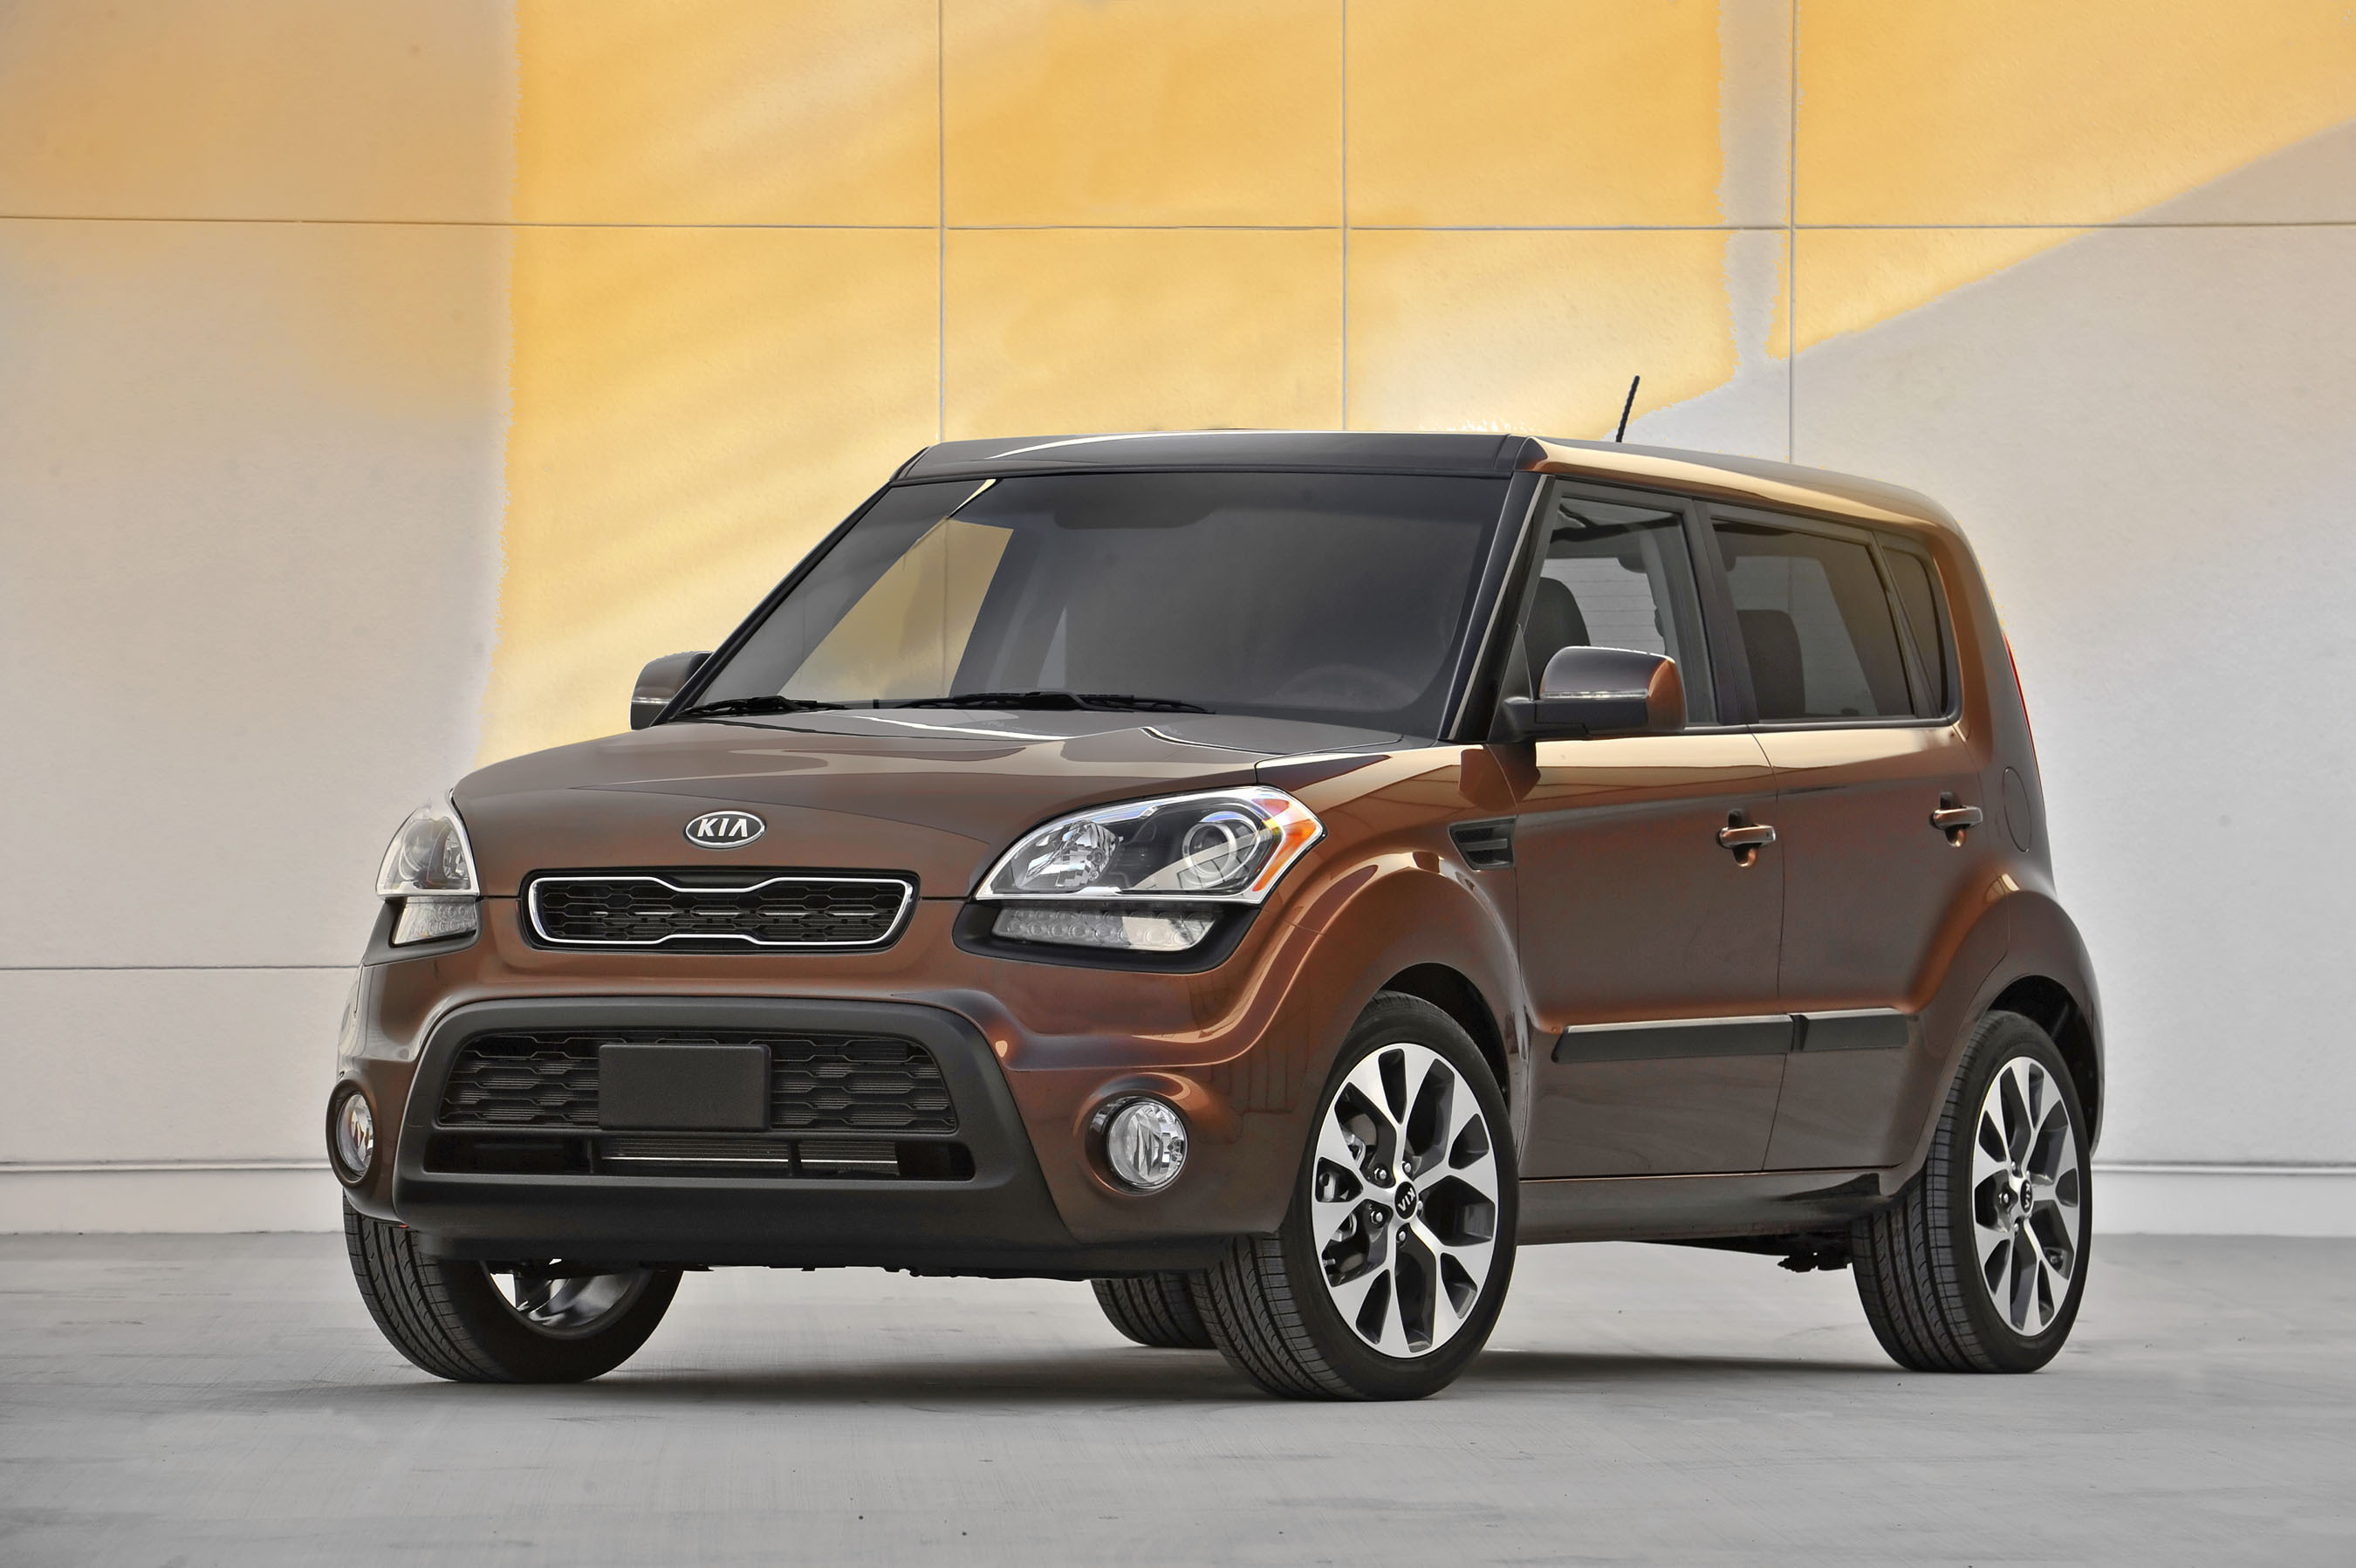 picture soul pictures burner concept wallpaper kia